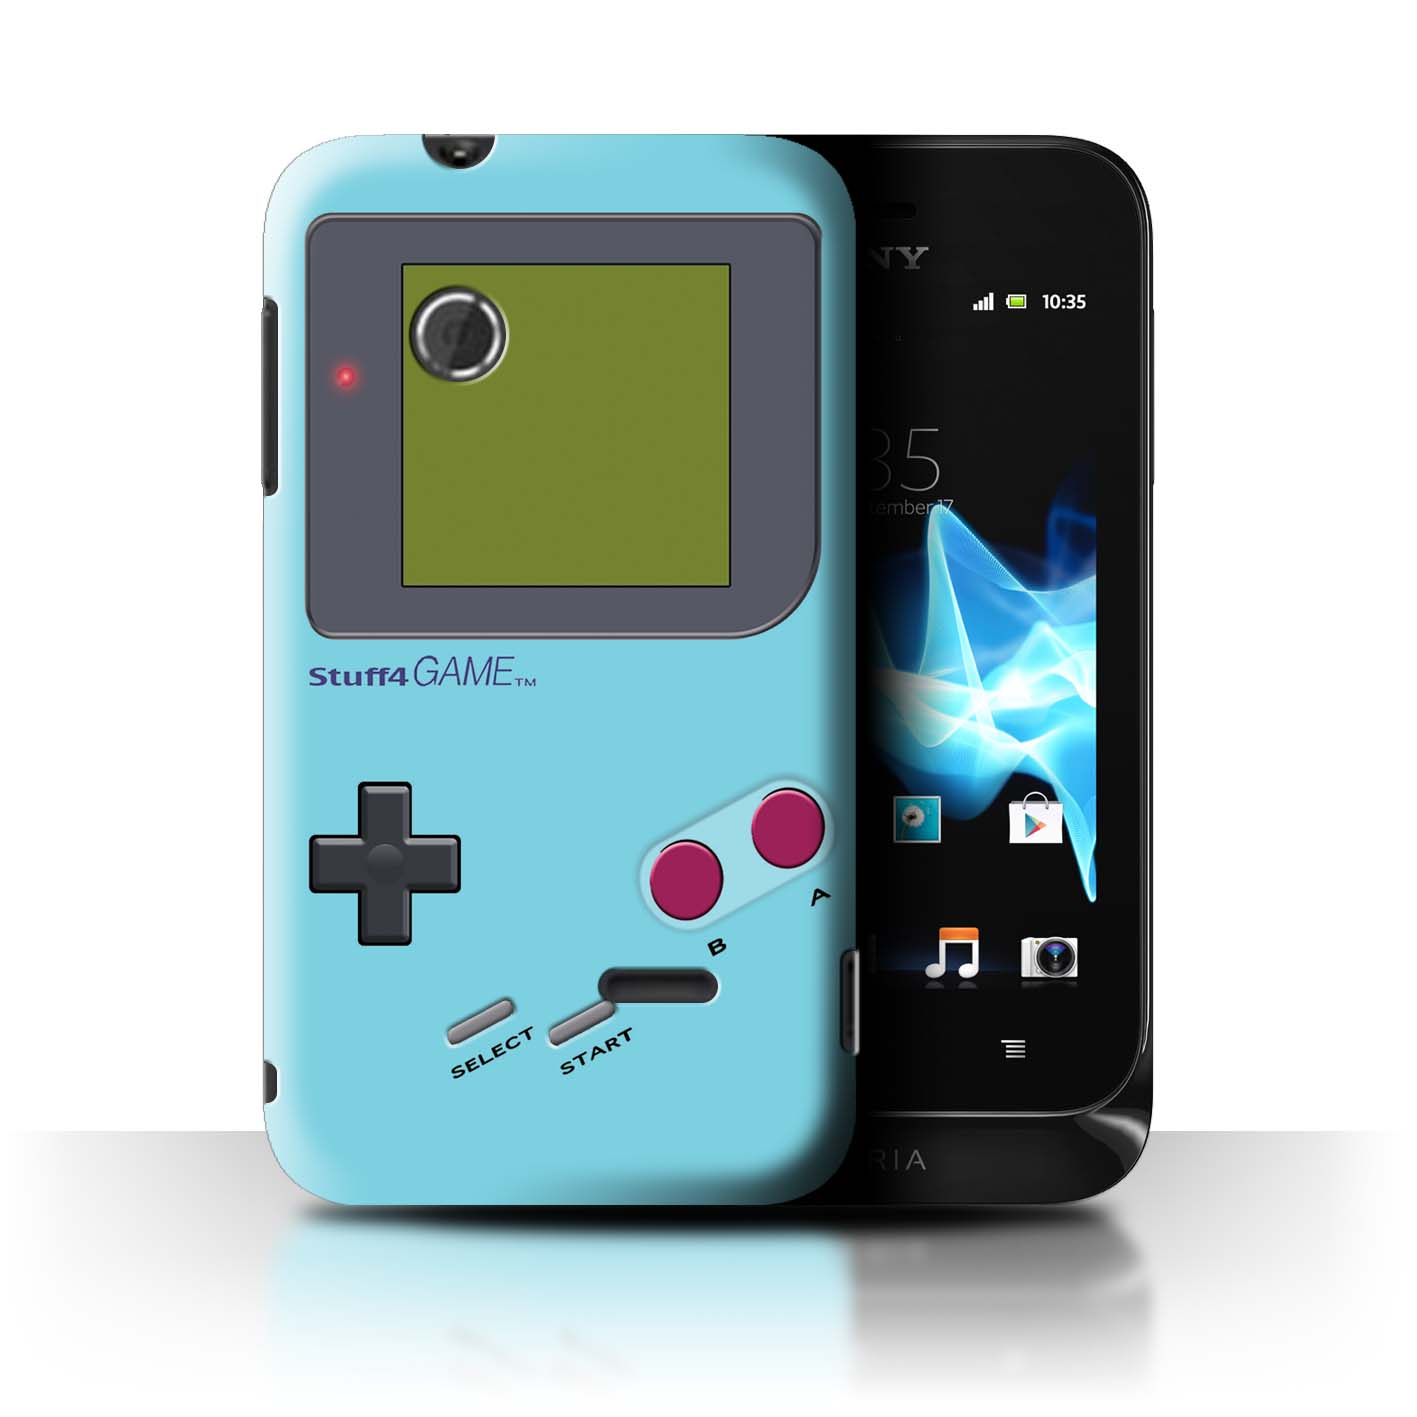 Stuff4-Huelle-Case-Backcover-fuer-Sony-Xperia-Tipo-ST21-Videogamer-Gameboy